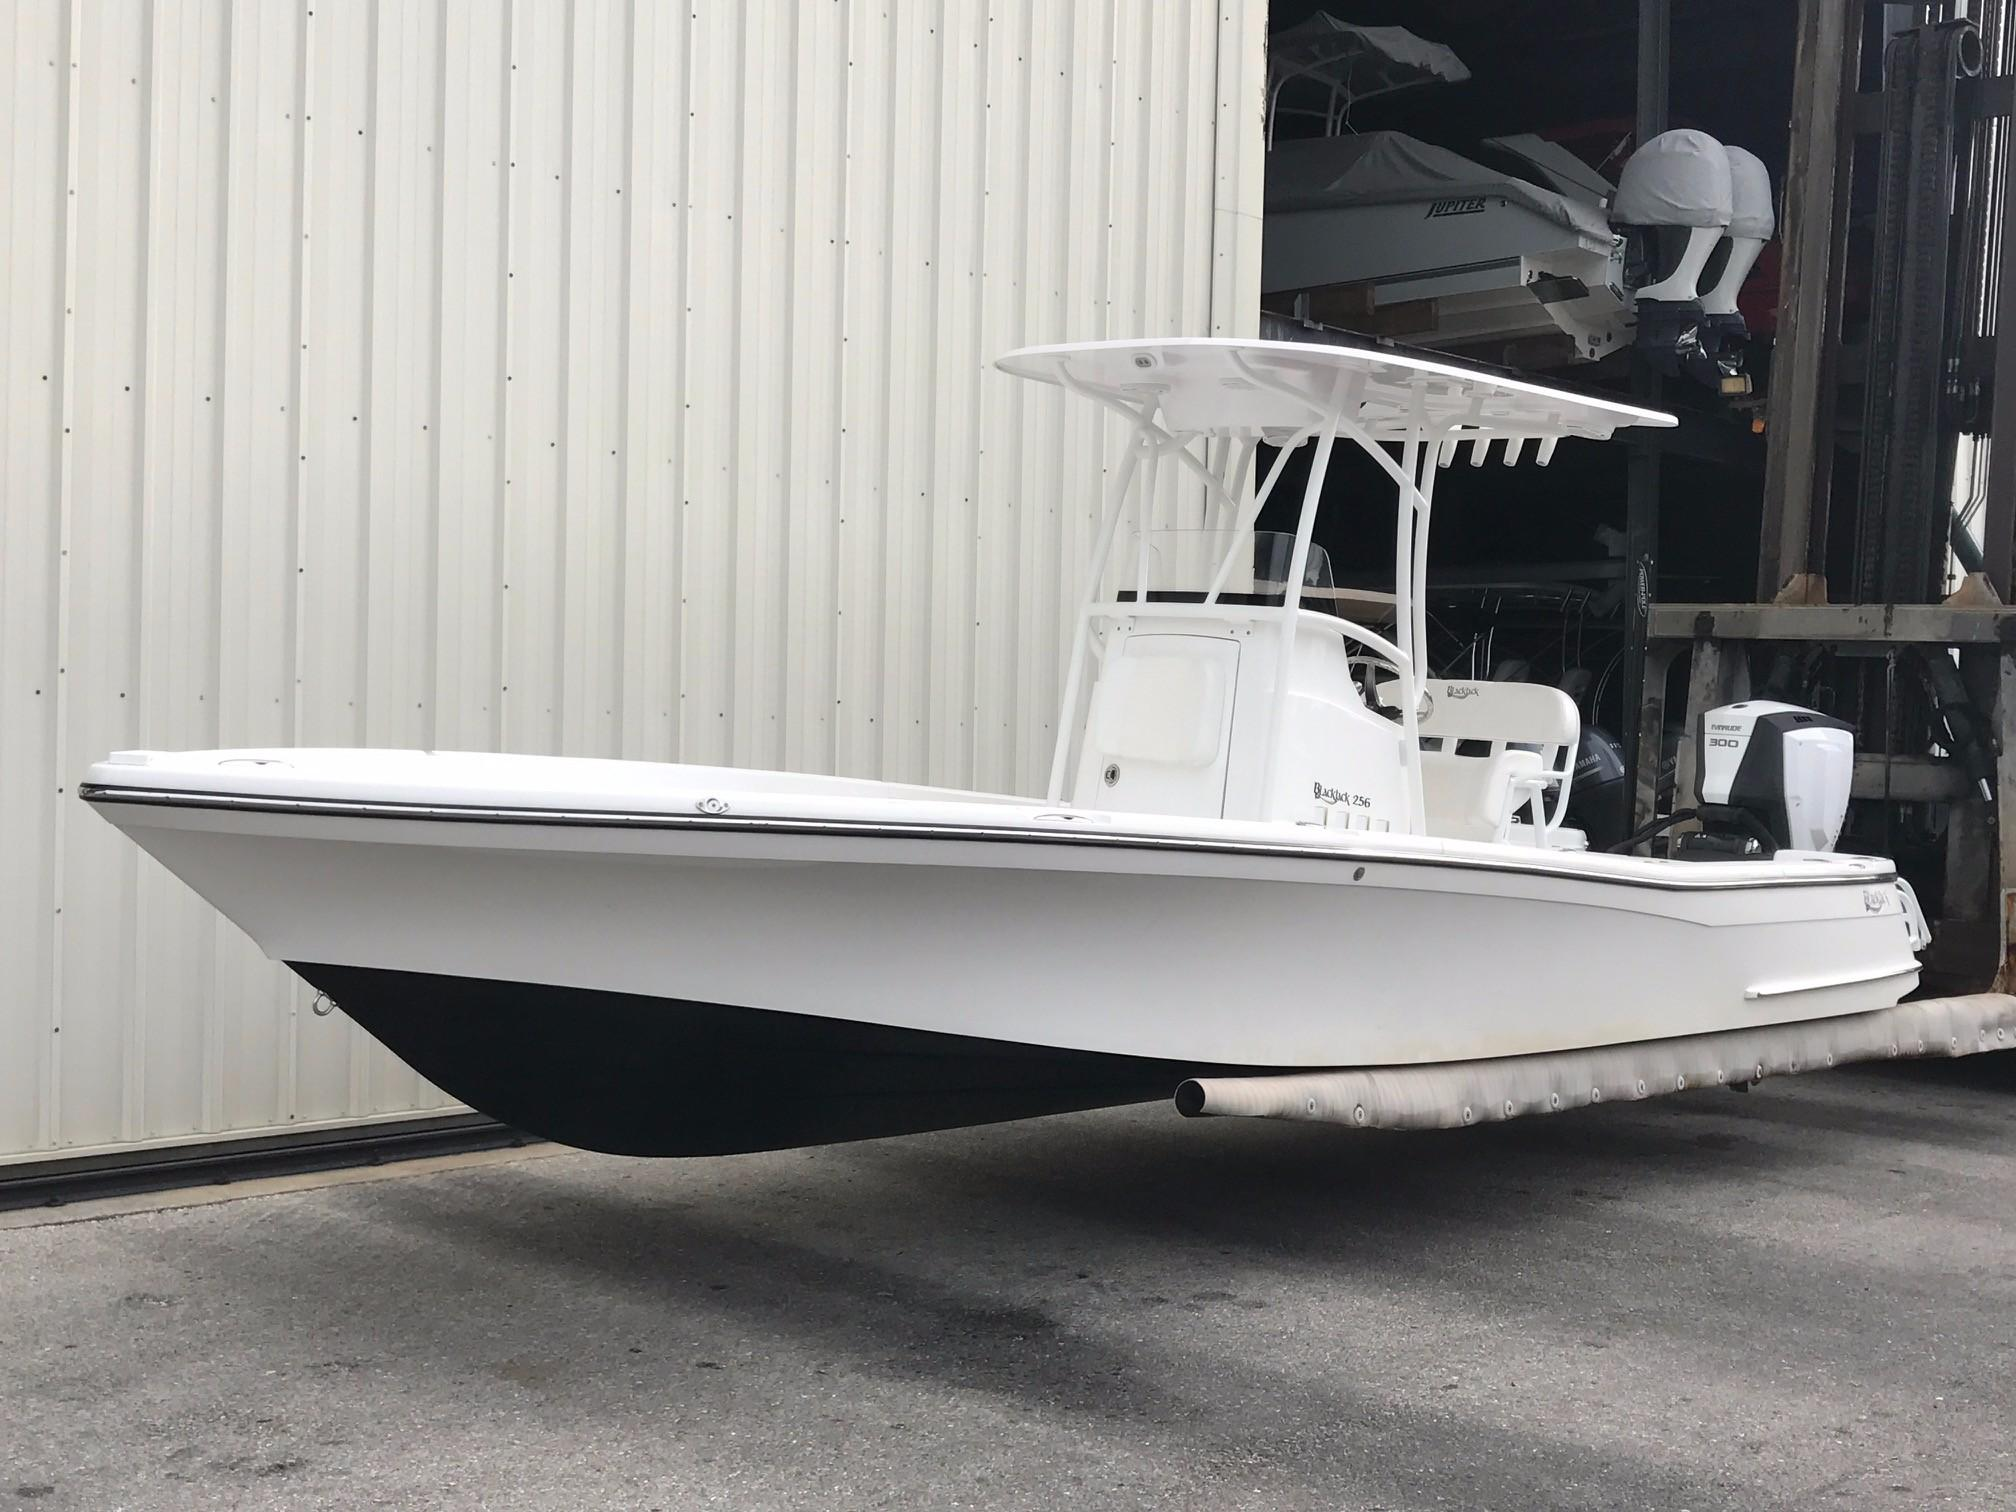 Blackjack   New and Used Boats for Sale